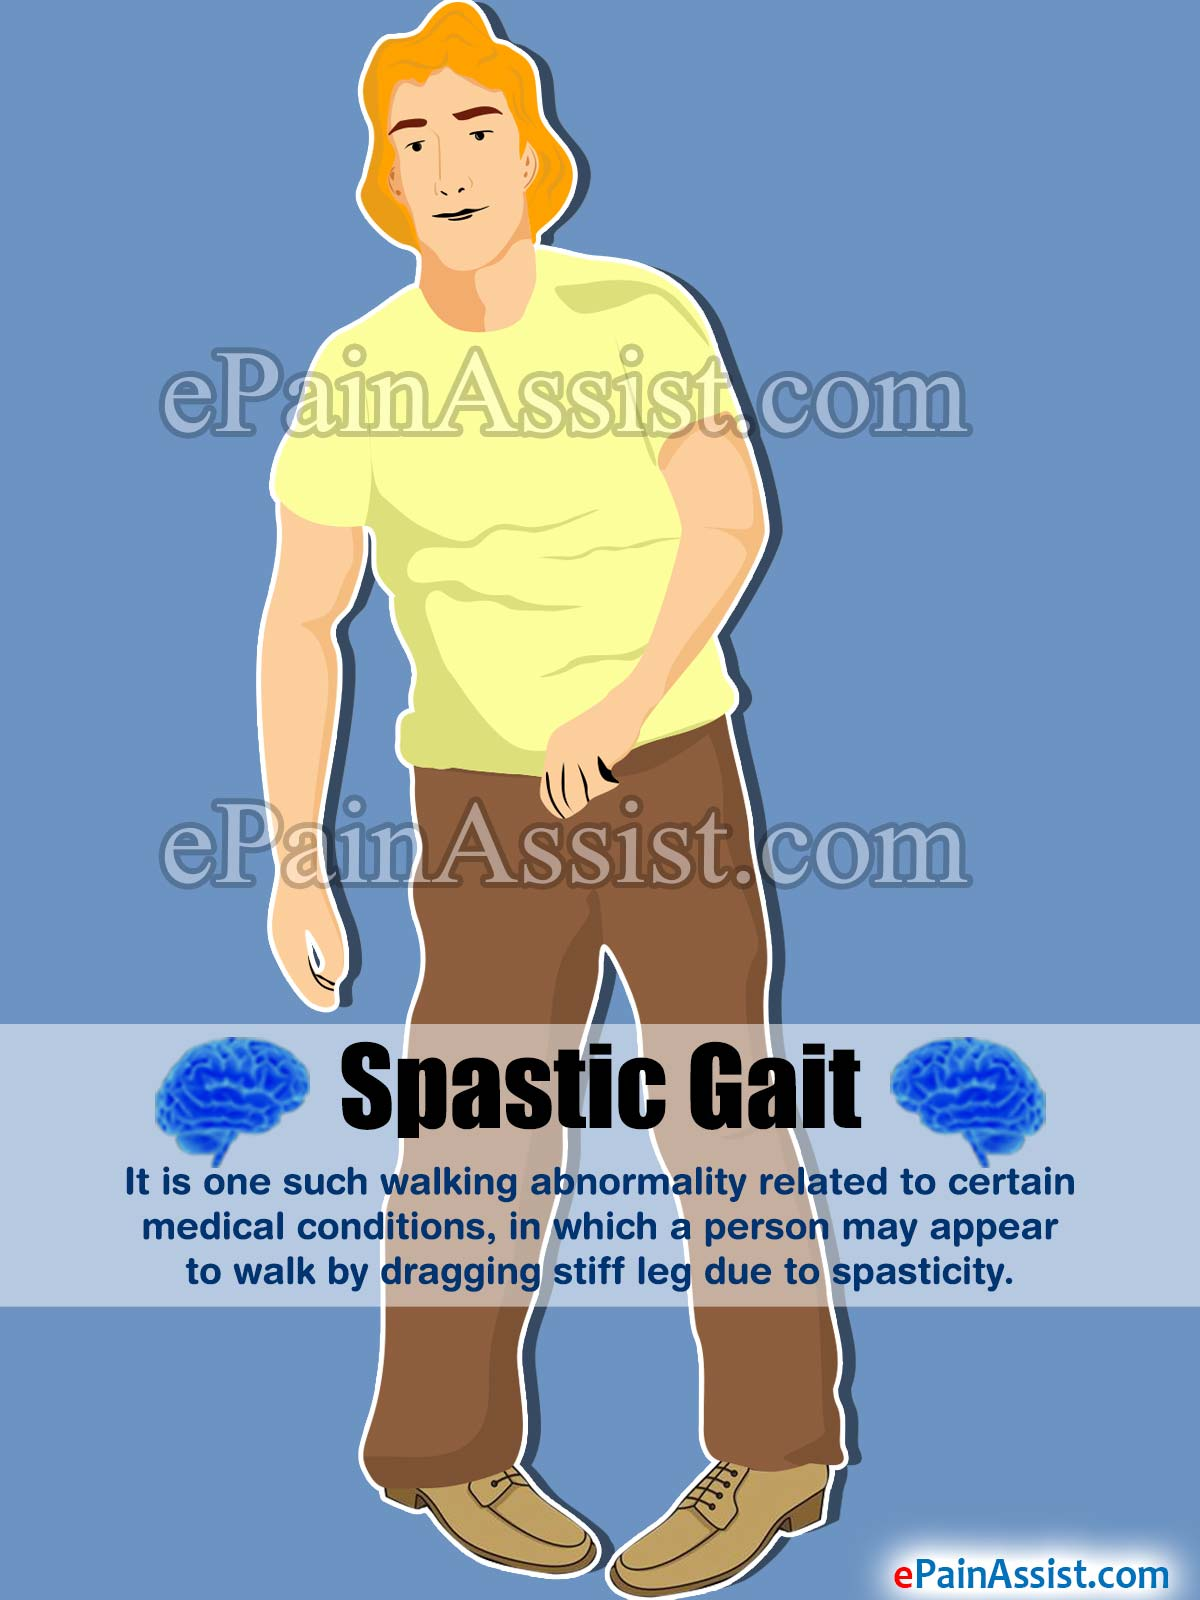 spastic gait|causes|treatment|rehabilitation, Skeleton